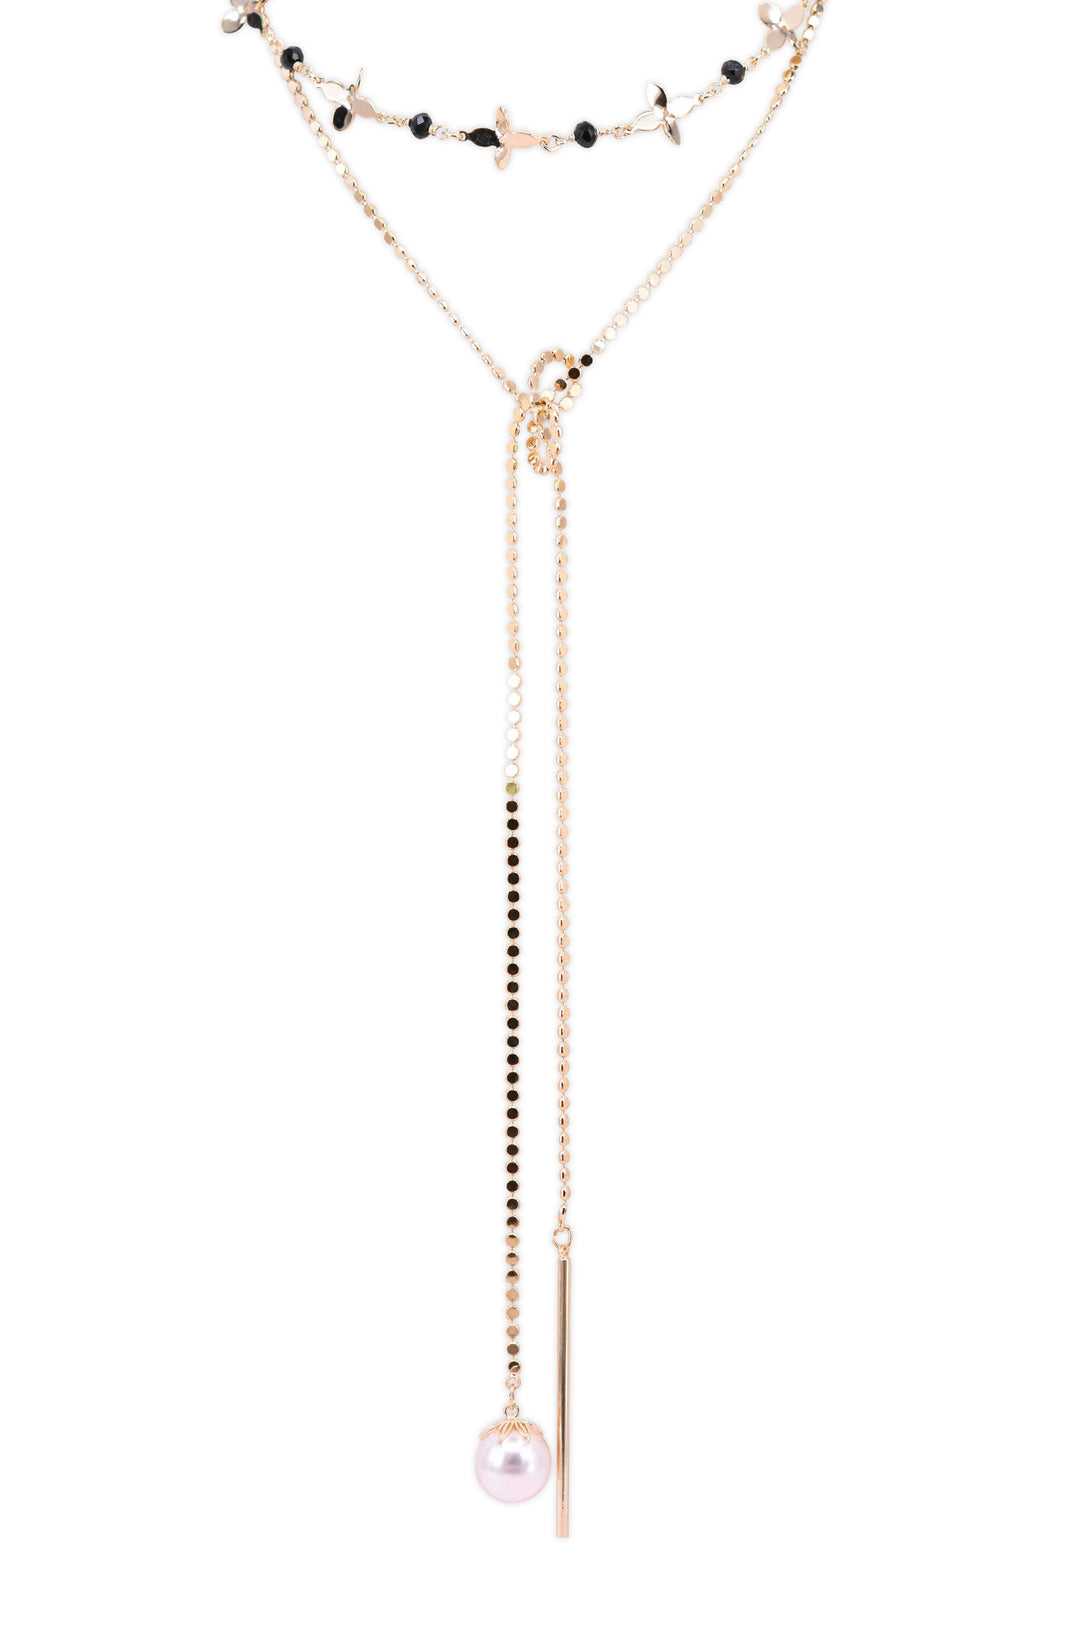 Asymmetrical Y shape pearl necklace